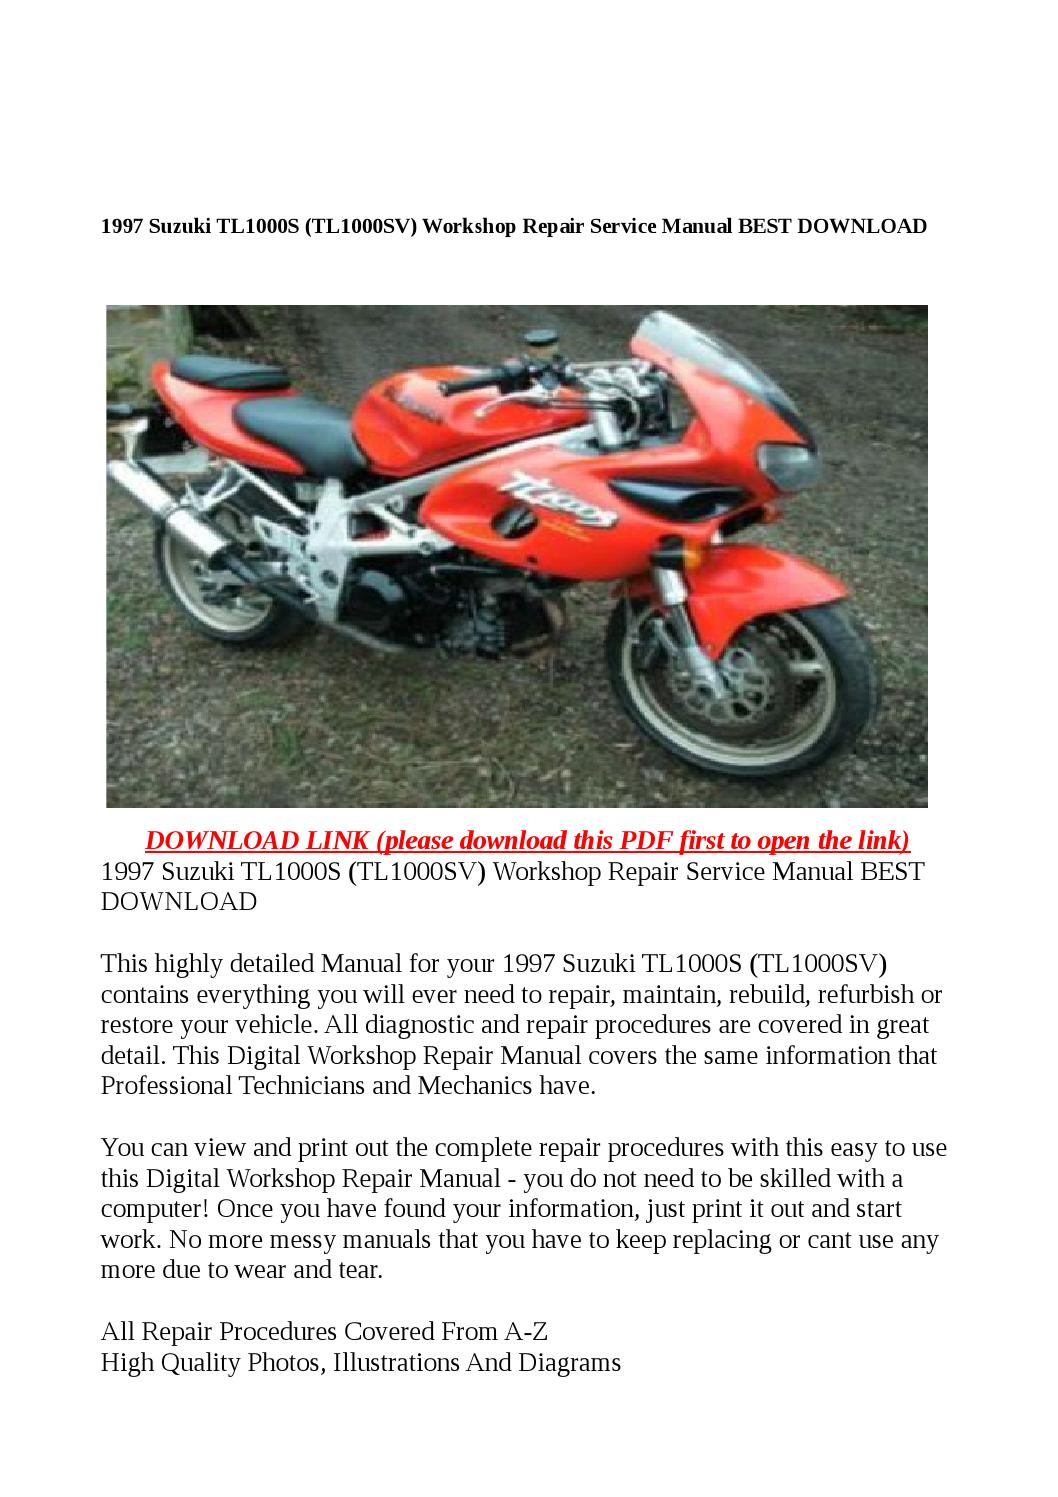 1997 suzuki tl1000s (tl1000sv) workshop repair service manual best download  by buhbu - issuu